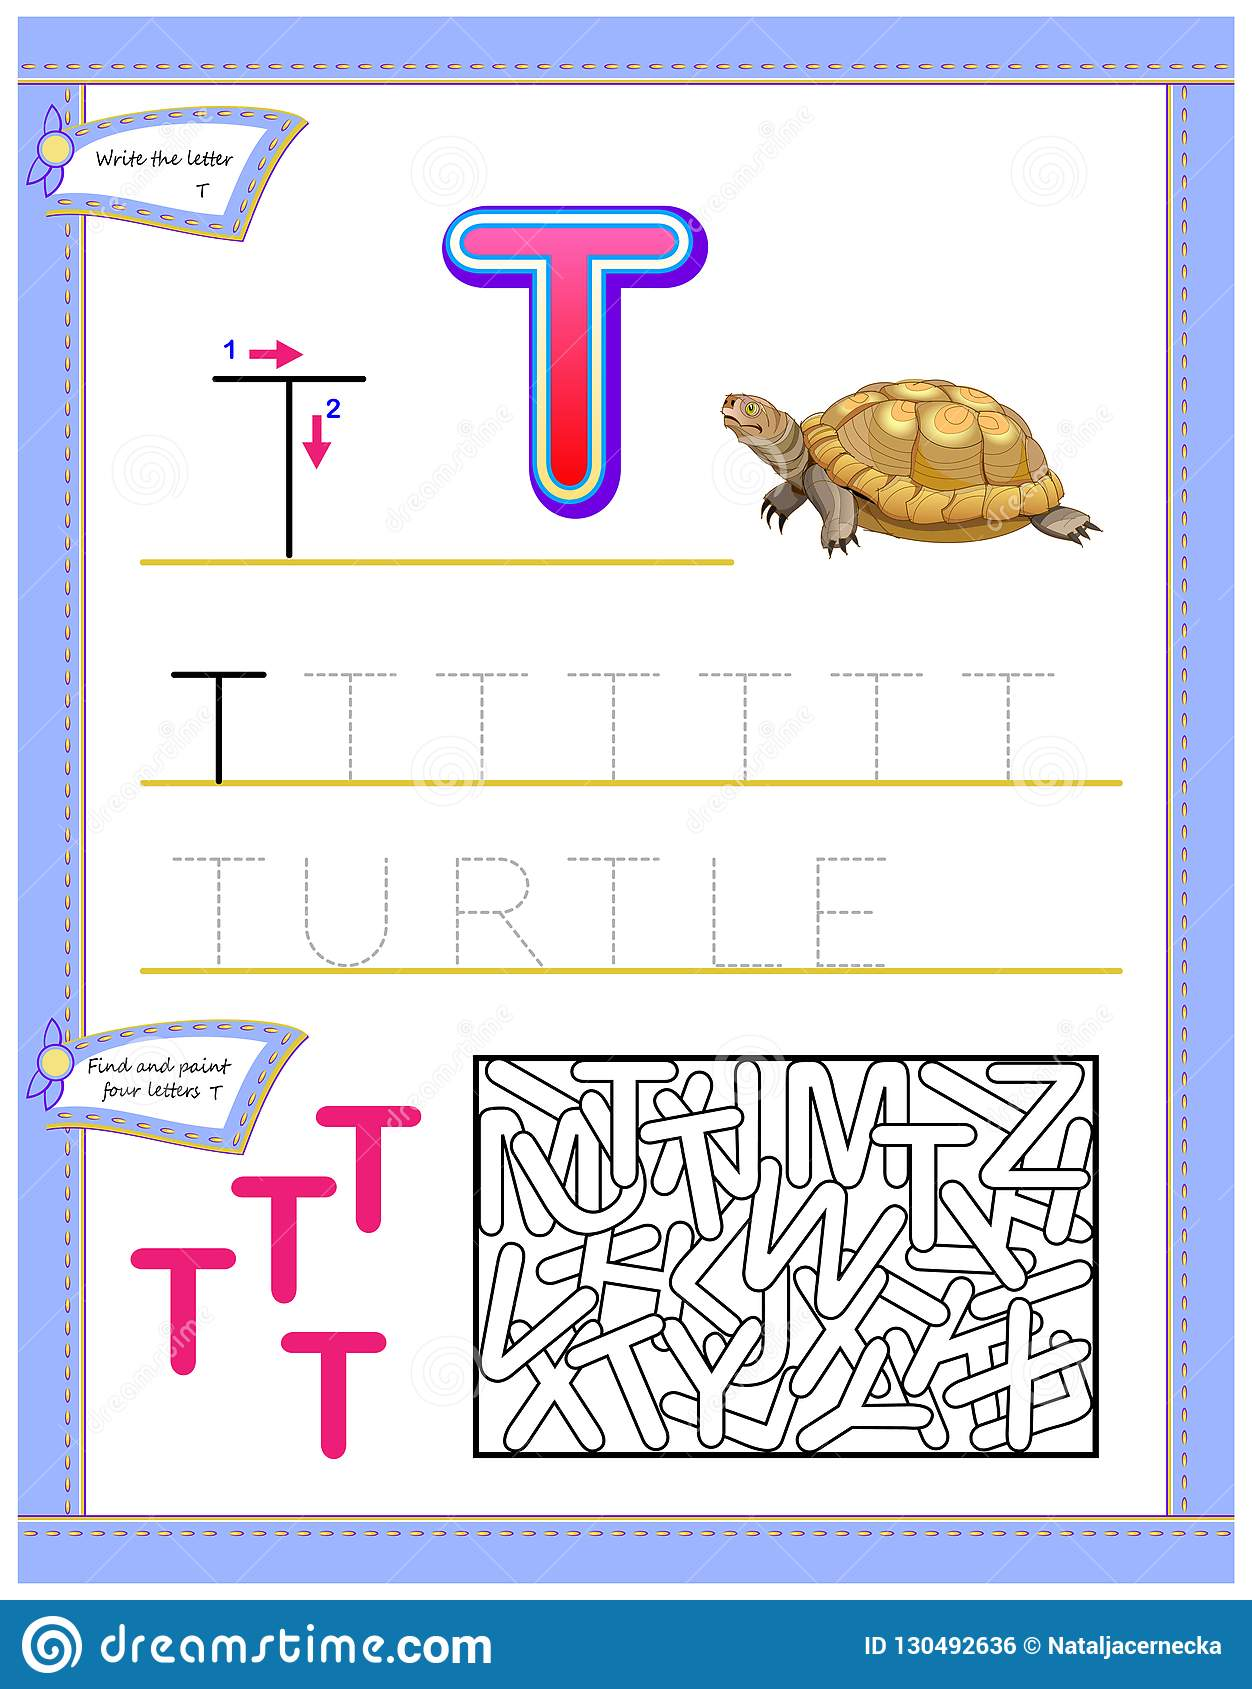 Worksheet For Kids With Letter T For Study English